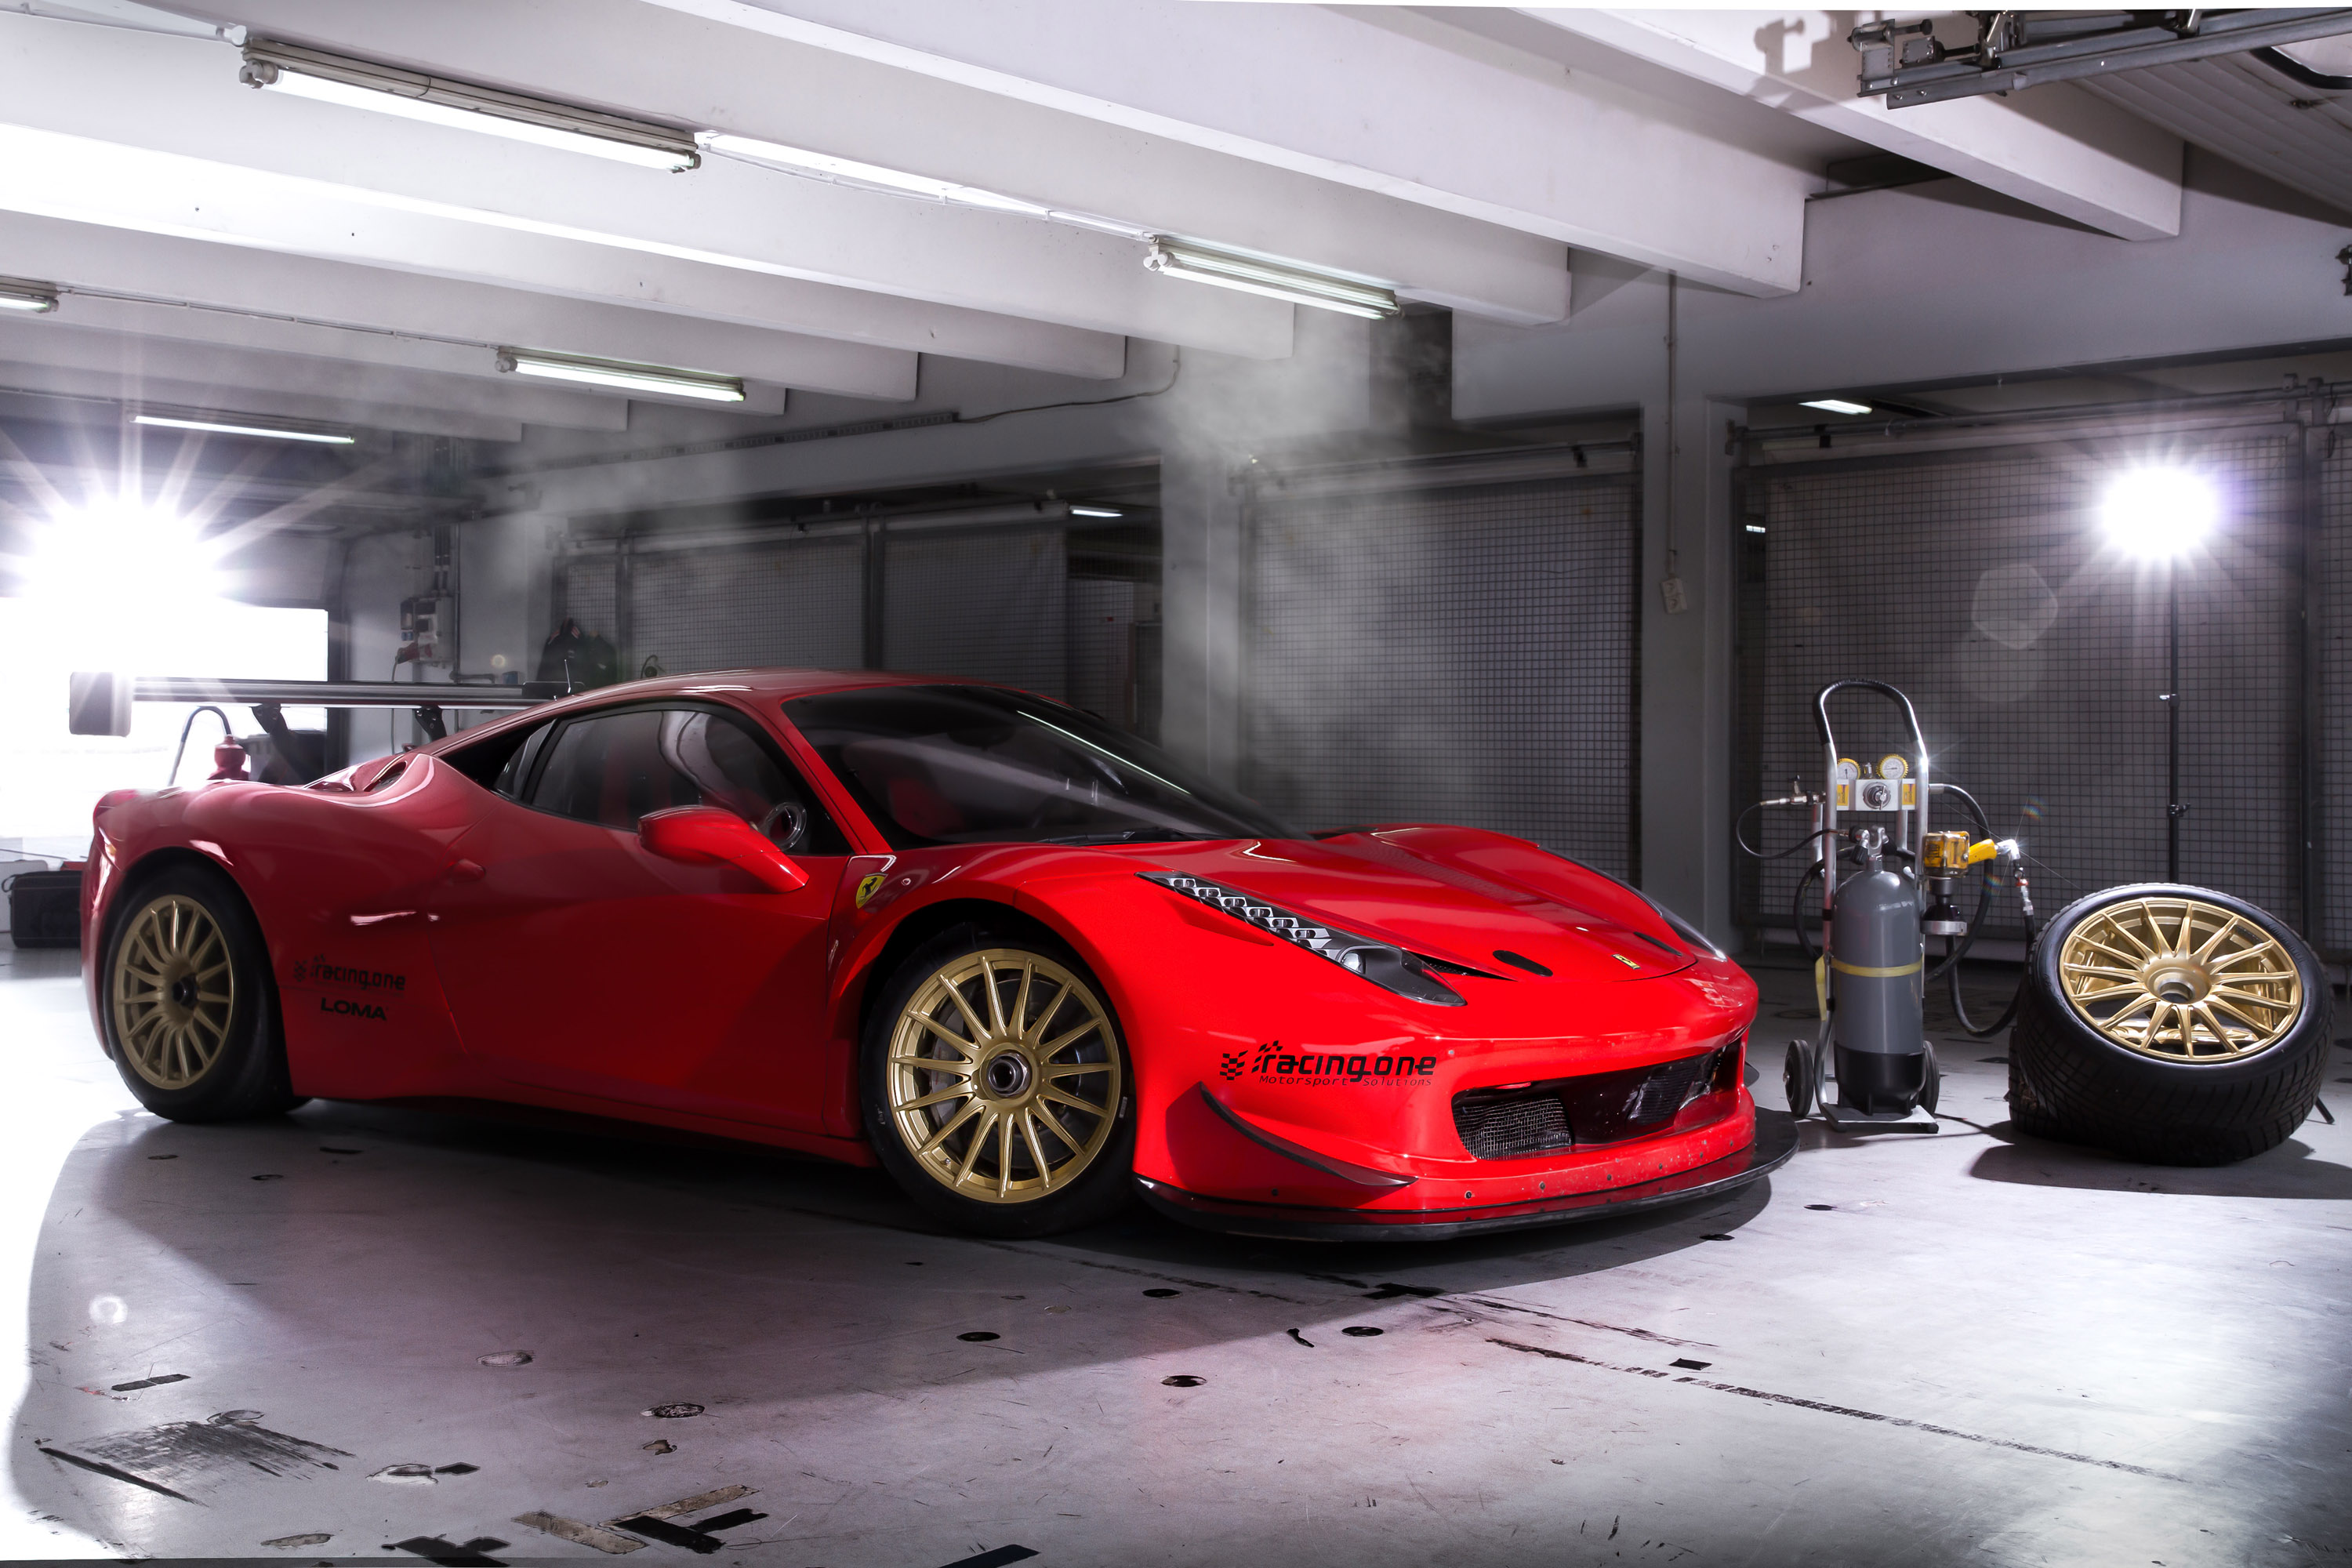 Loma Releases Gt Competition Wheels For Ferrari 458 Italia